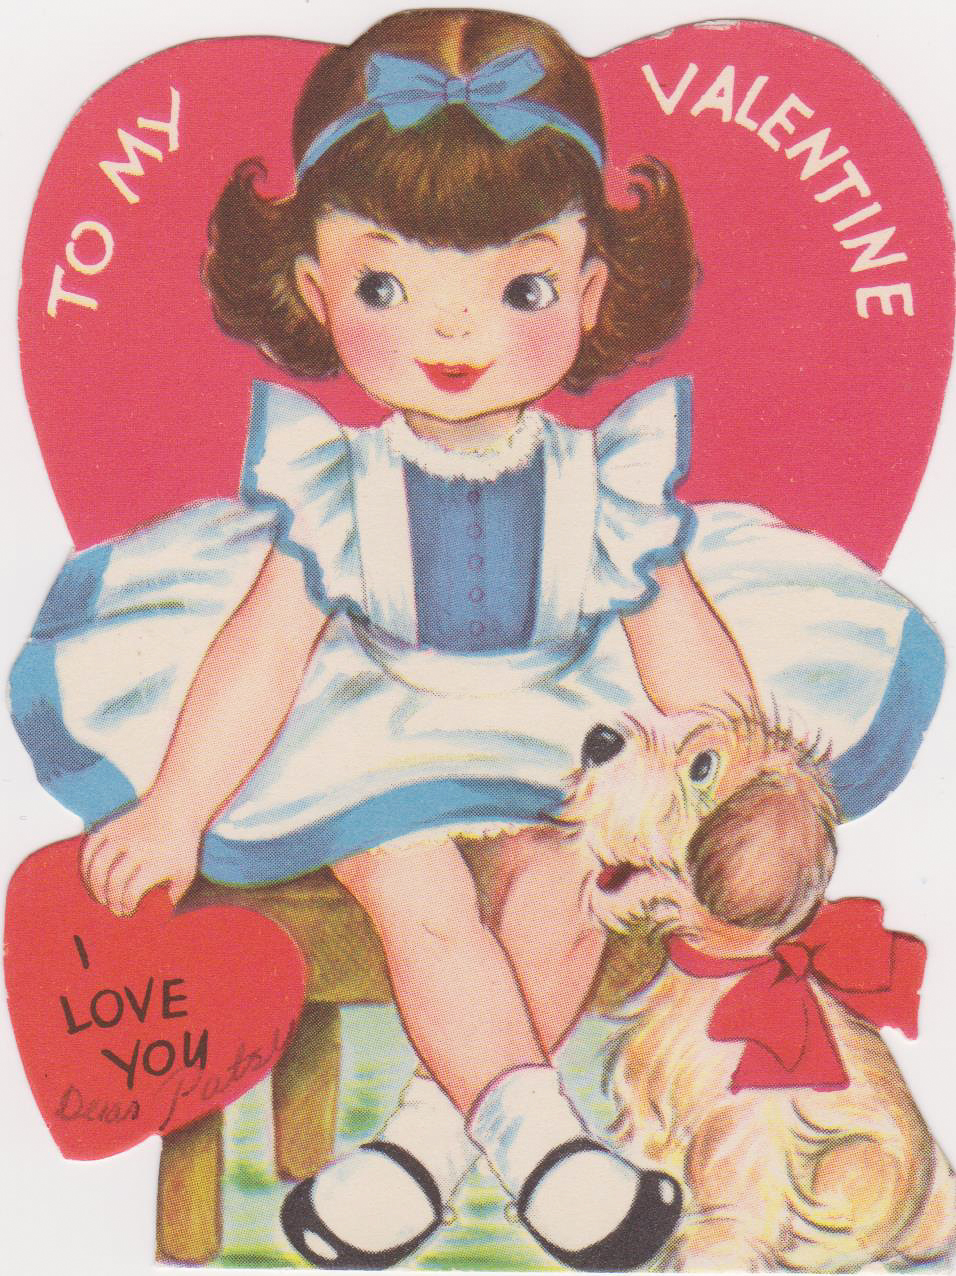 Vintage Valentine Image for Shadowbox Ornament via www.angelamaywaller.com